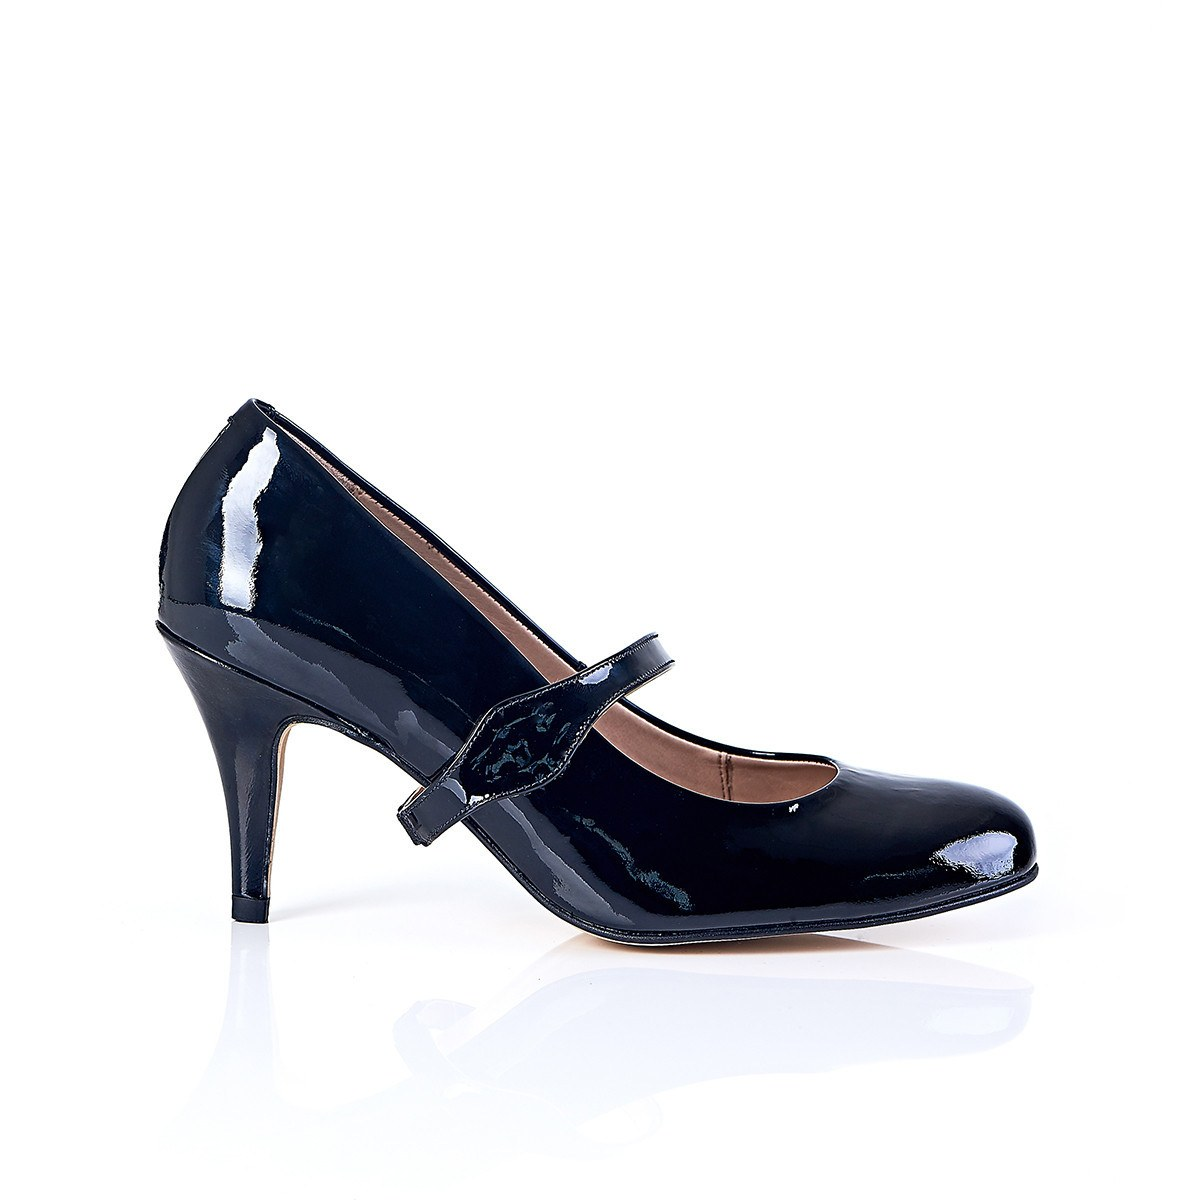 Take My Lead - 18 Hour Heels - Black Leather - Shoes by Shaherazad